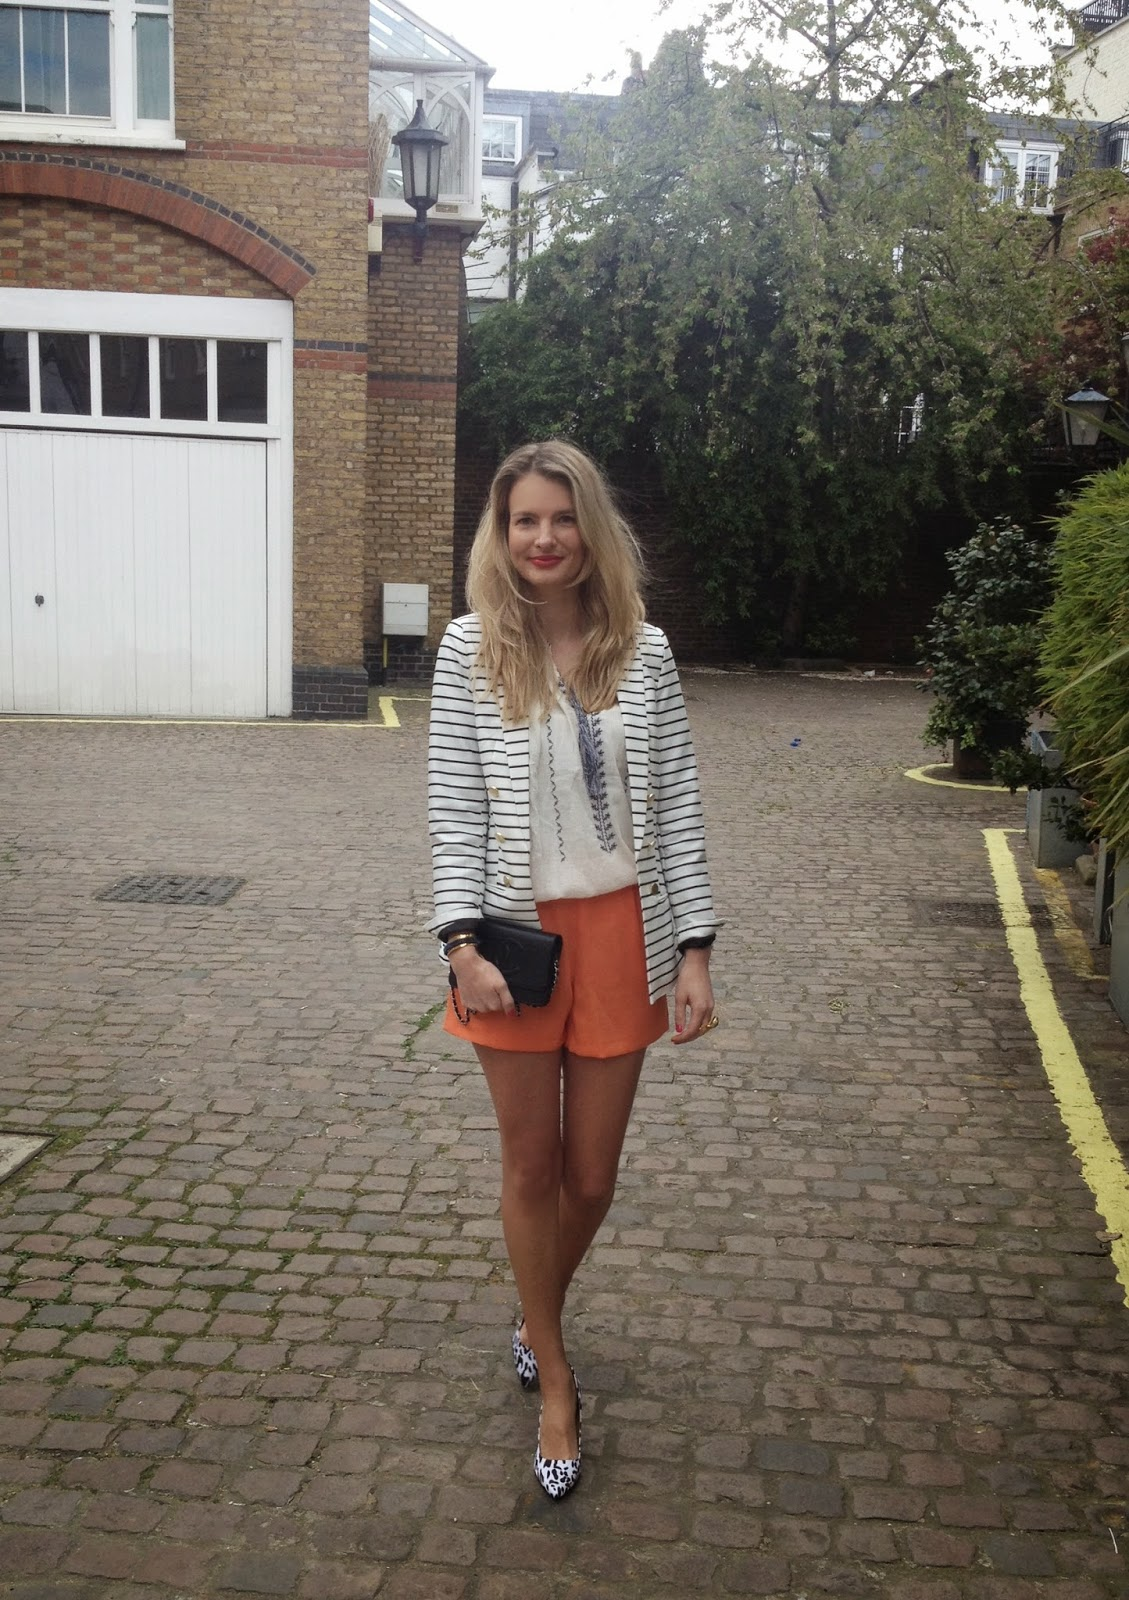 mango, mango fashion blogger, mango shirt, striped blazer, stripes, orange shorts, shorts, shorts and blazer, street style, fashion blogger, london fashion blogger, asos, asos shorts, print mix, leopard print heels, asos heels, asos shoes, chanel bab, woc, wallet on chain, chrissabella, embroidered smock top, smock top, mango top